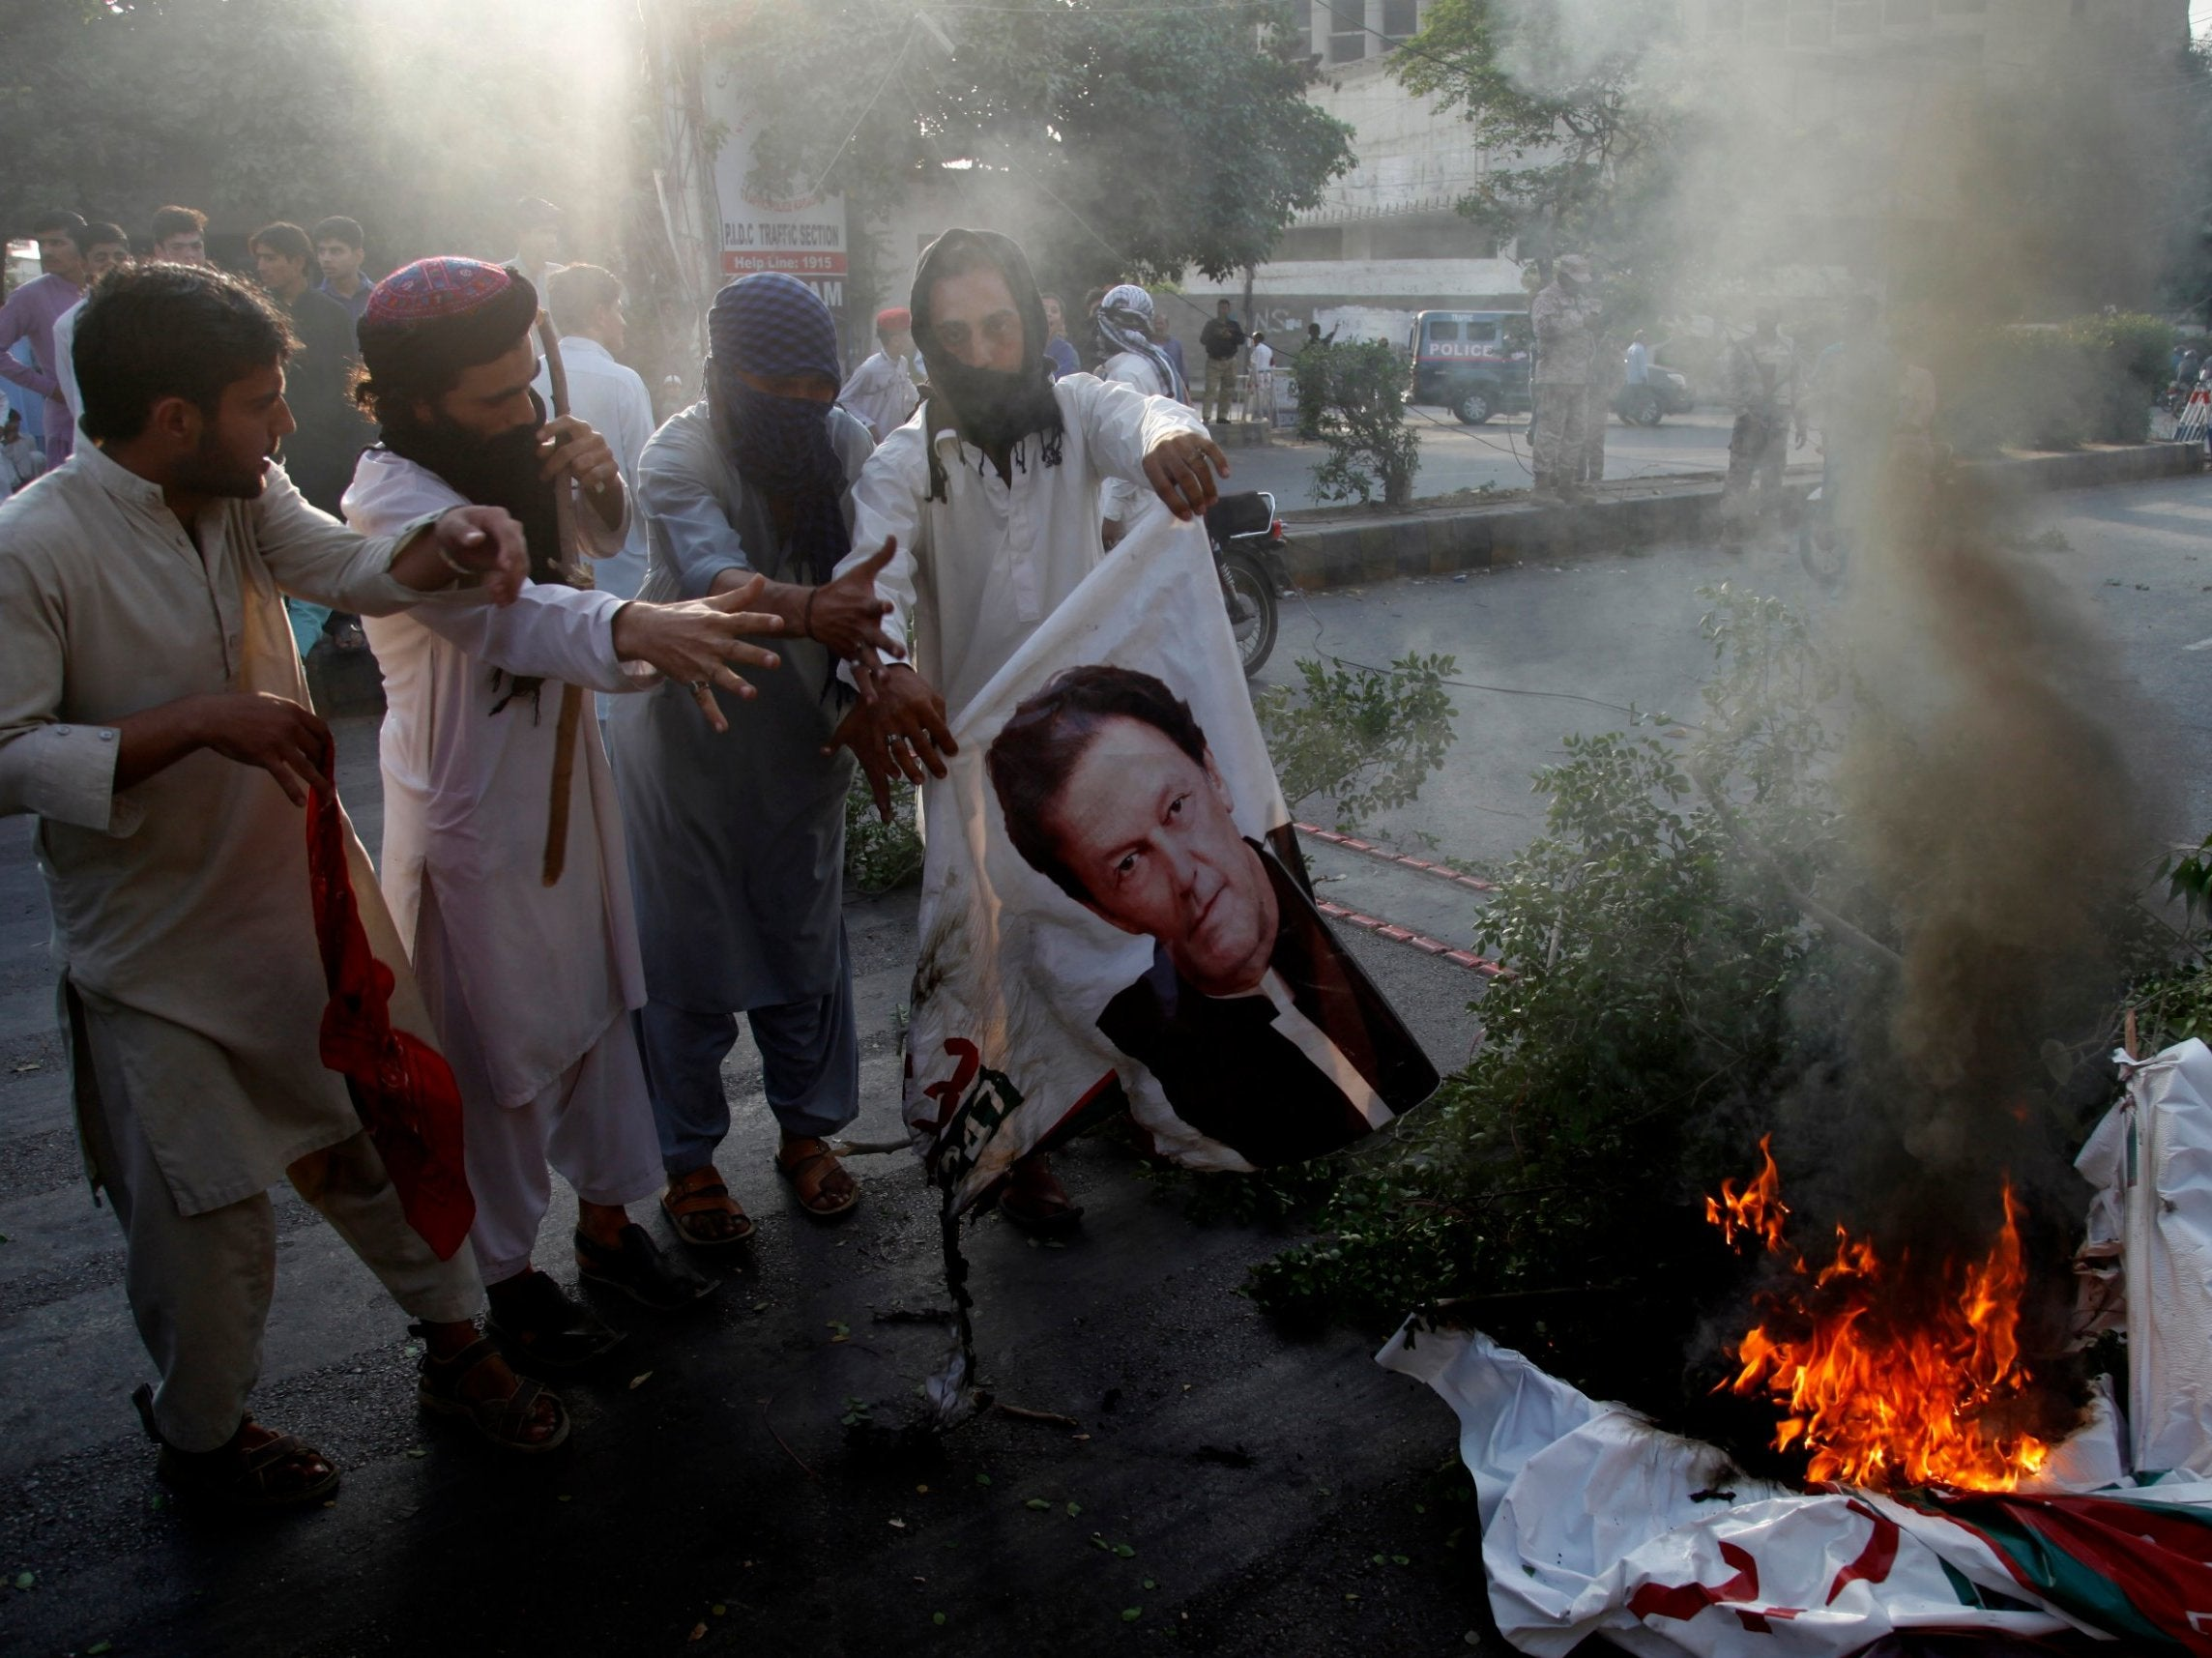 Despite being innocent, Asia Bibi was forced out of her country – this is the dark truth about Pakistan's blasphemy laws